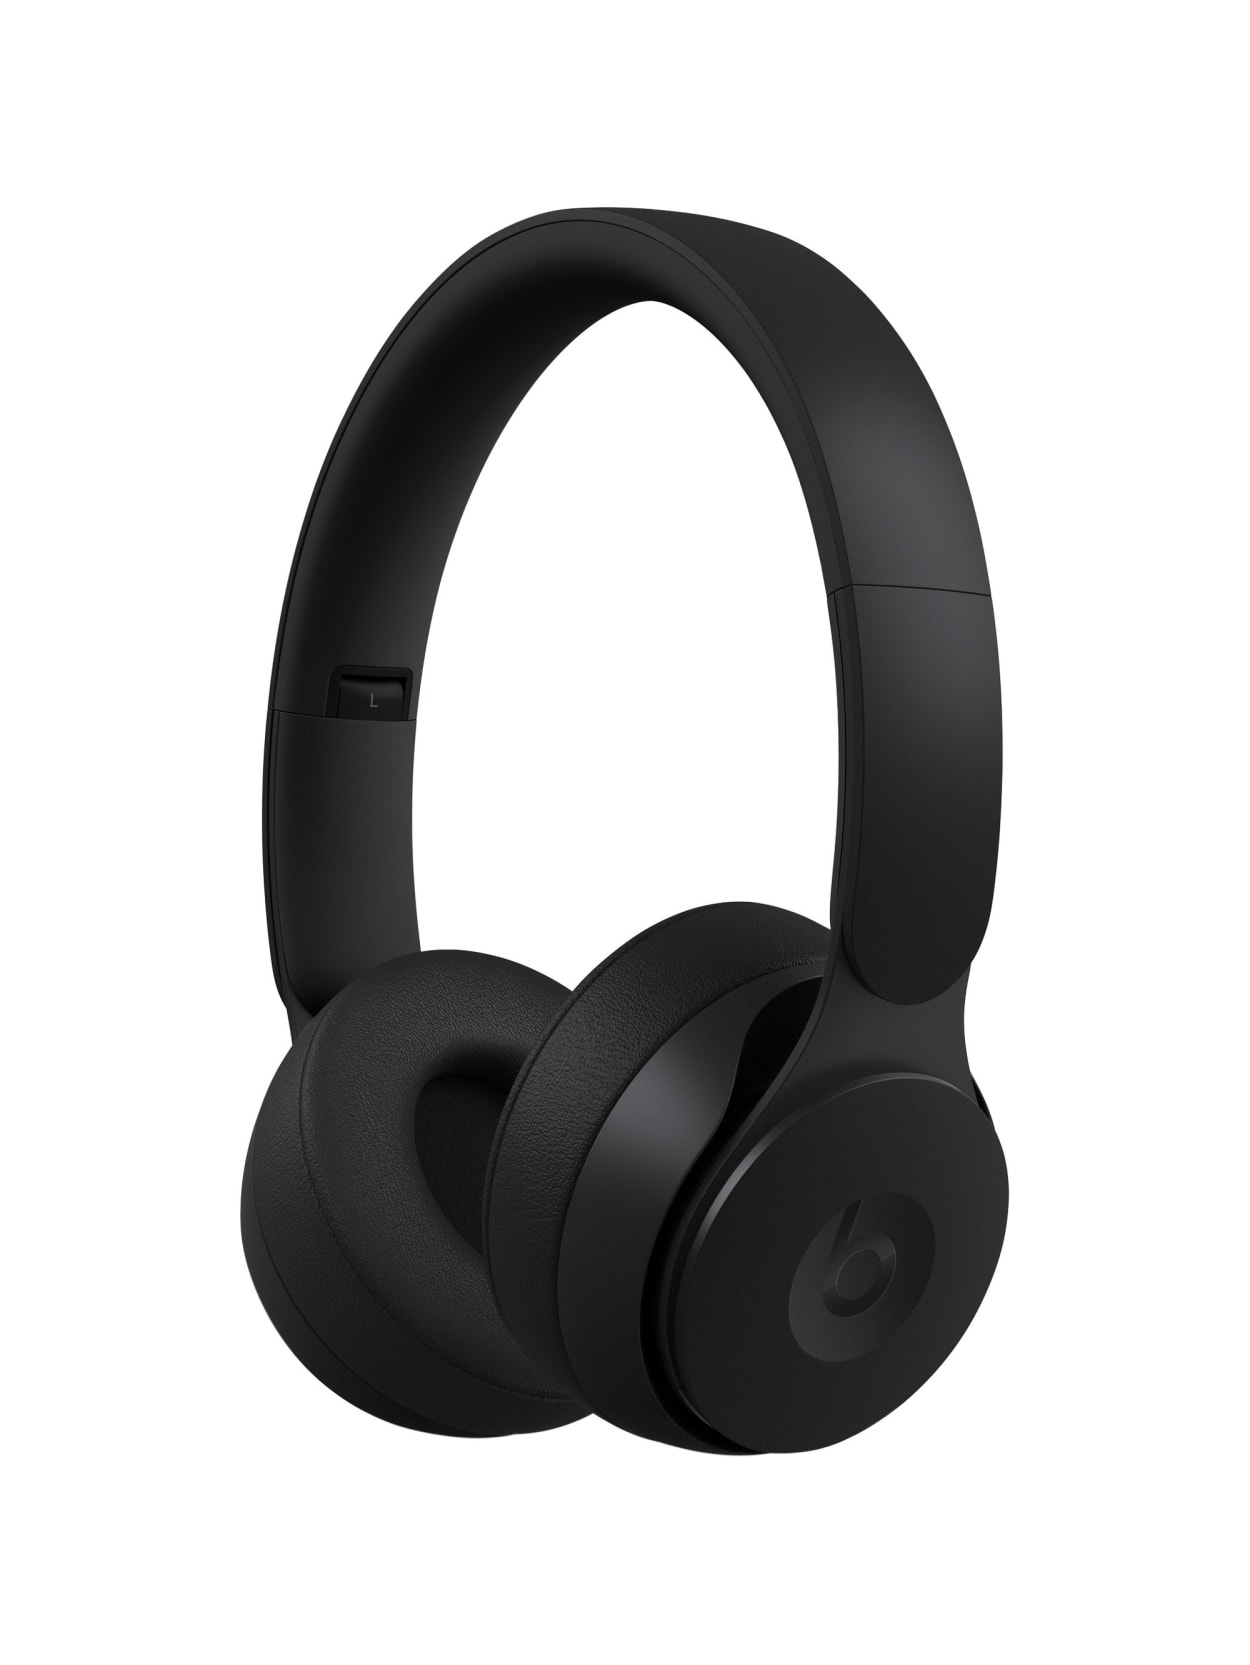 Beats By Dr Dre Solo Pro Wireless Noise Cancelling Headphones Black Stereo Wireless Bluetooth Over The Head Binaural Circumaural Noise Canceling Black Office Depot